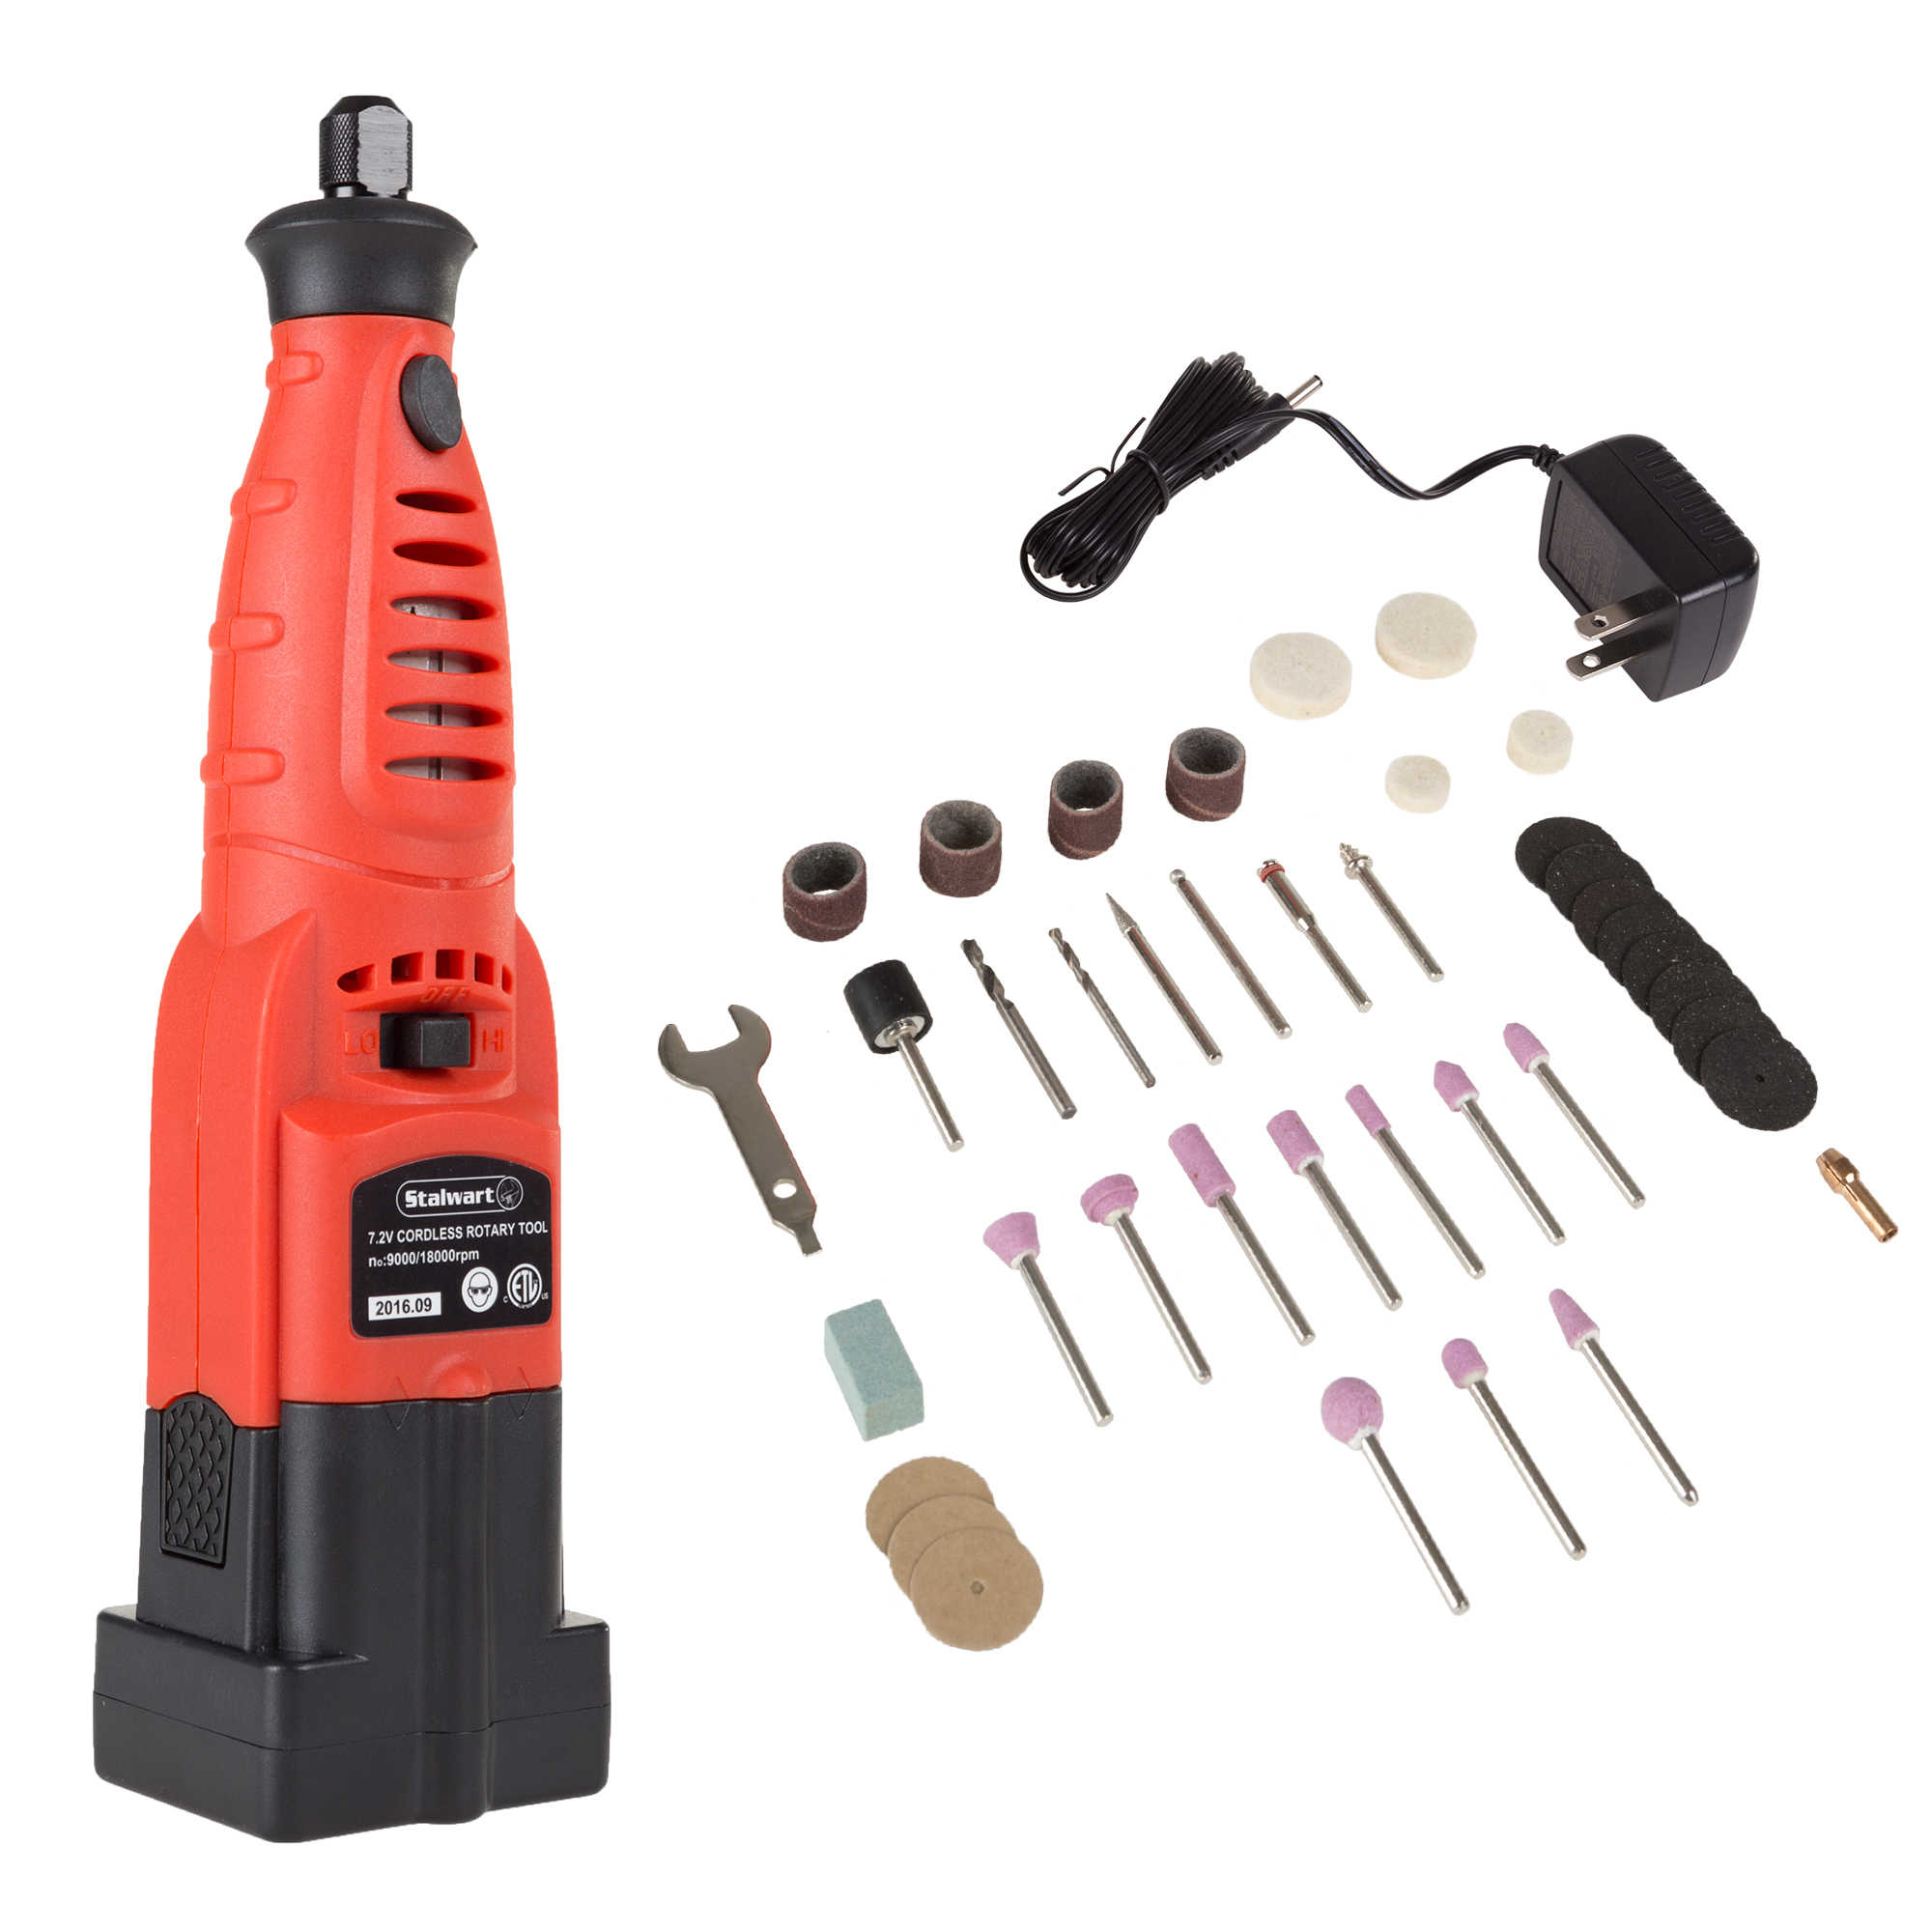 Rotary Tool Kit 7.2 Volt Cut Grind Polish Sand 40 PC Set By Stalwart